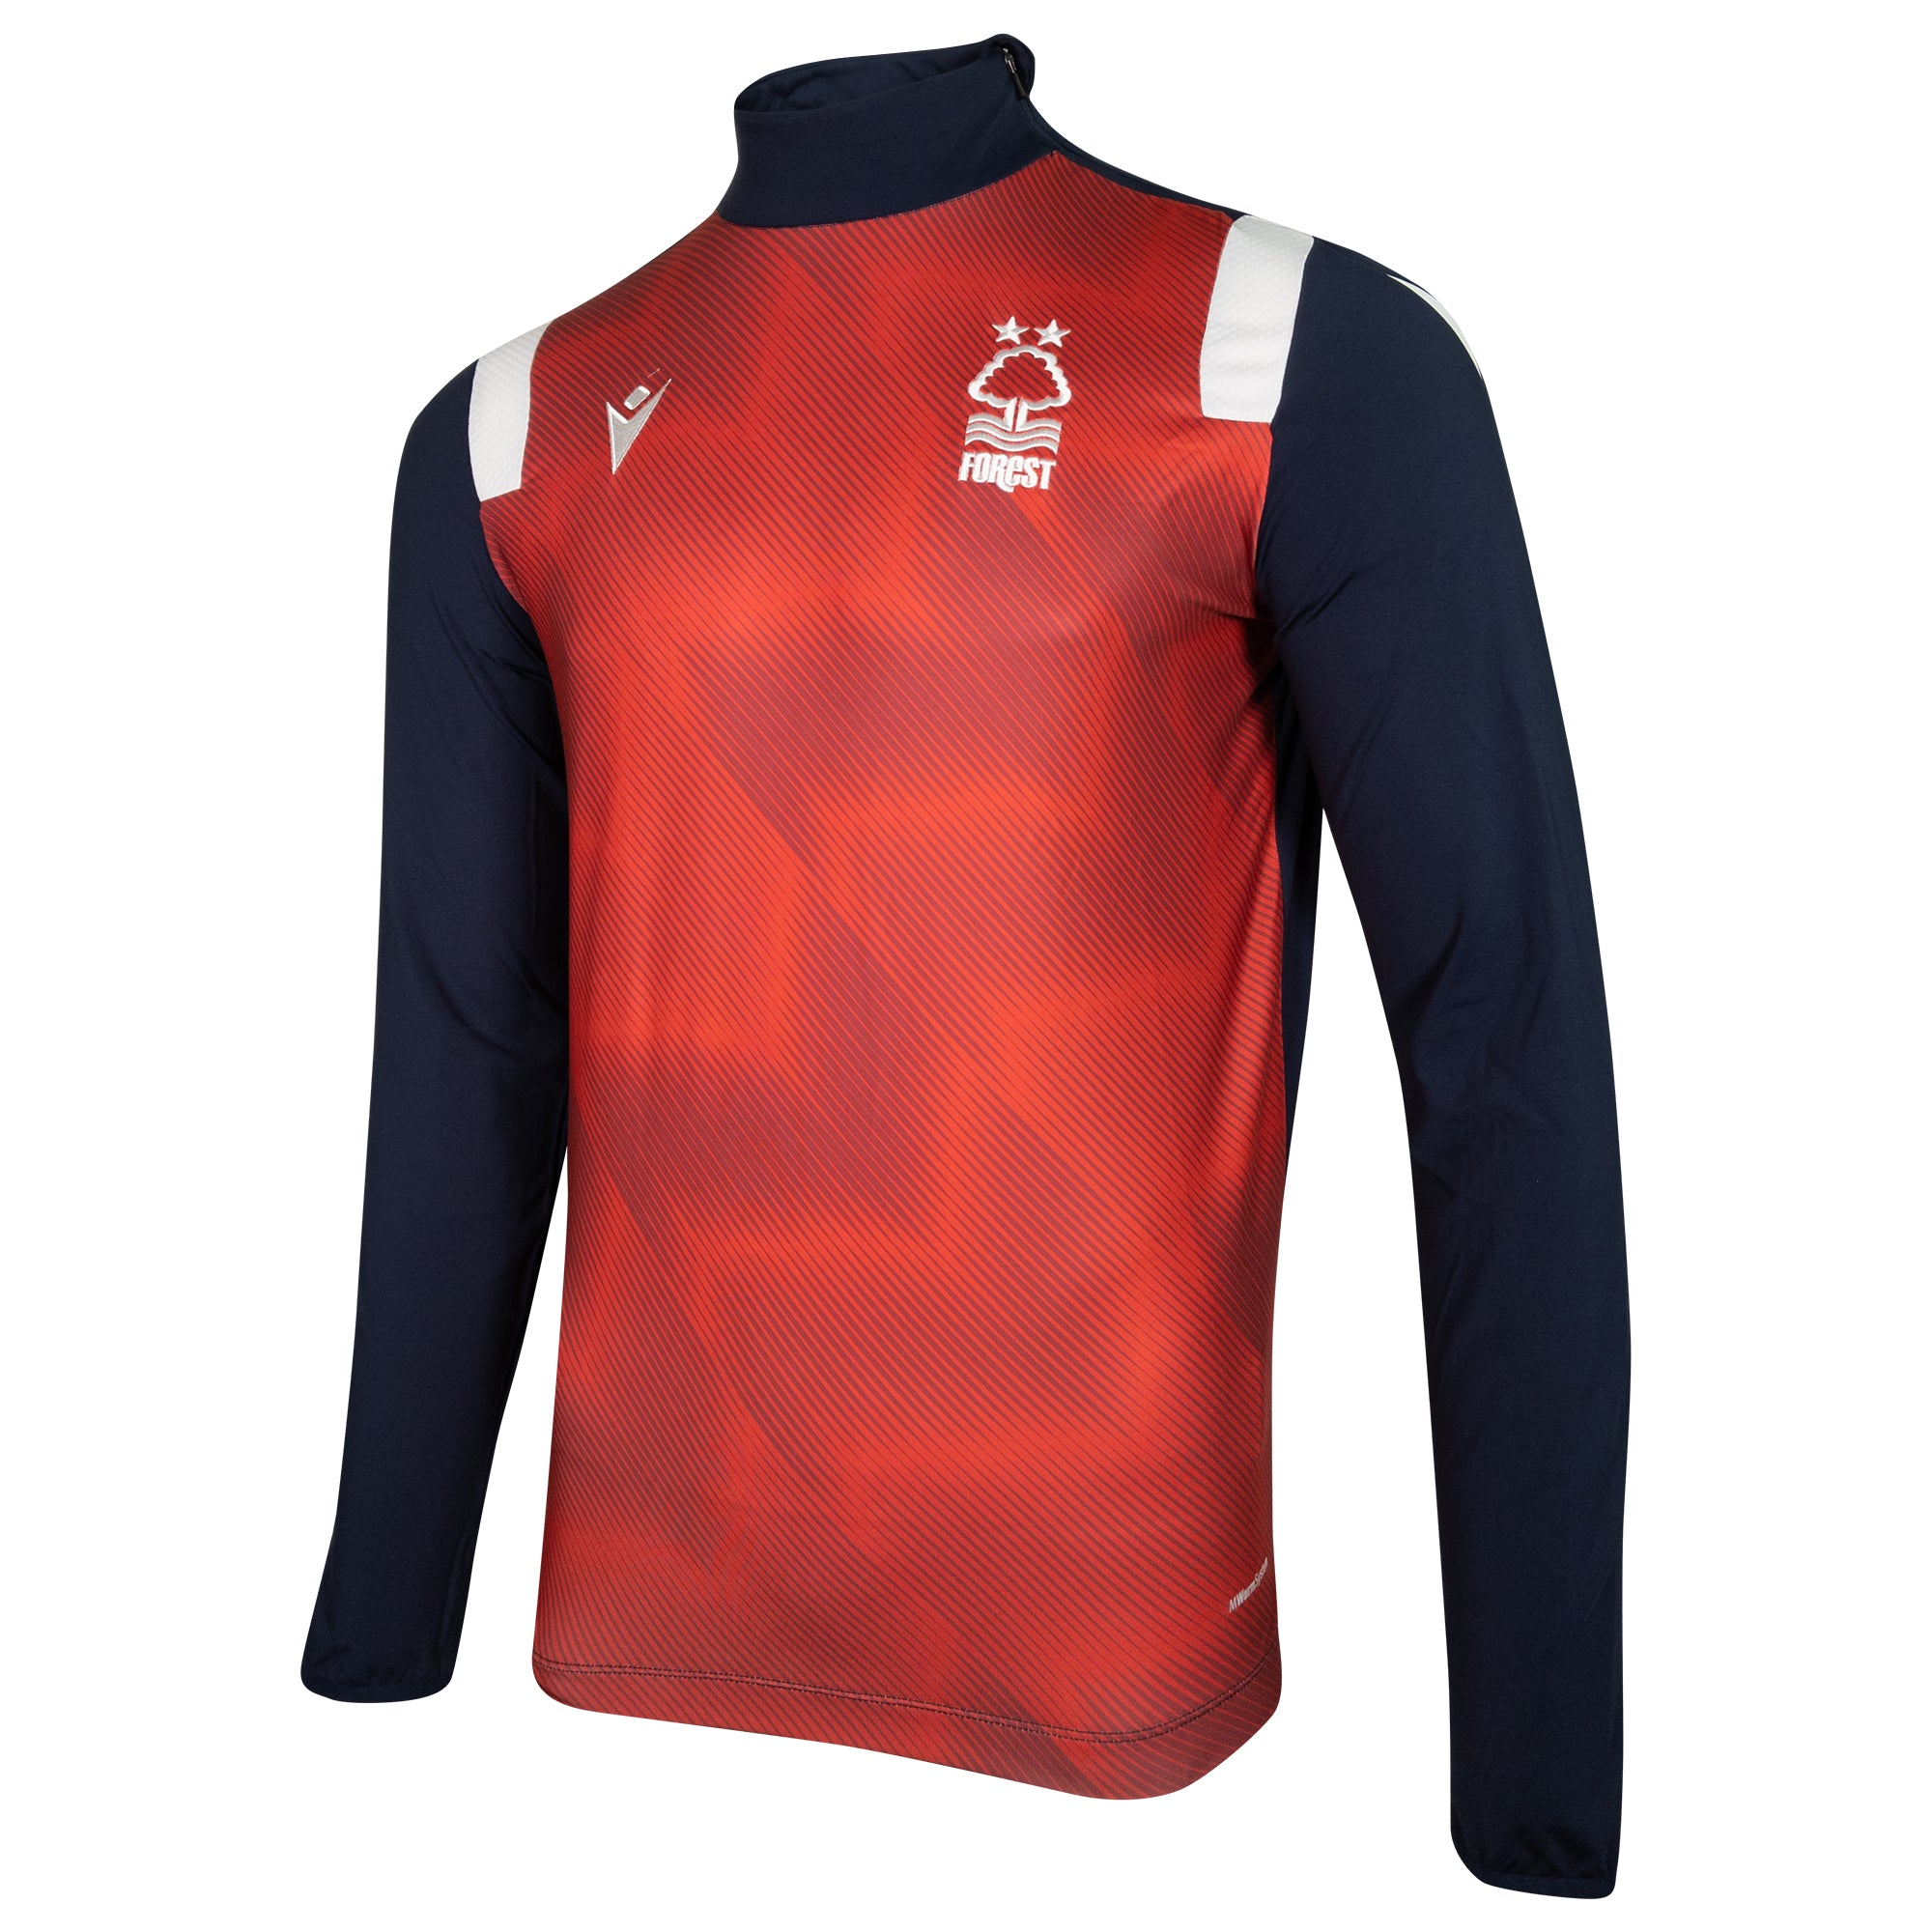 NFFC Mens Player Training 1/4 Zip Top 2020/21